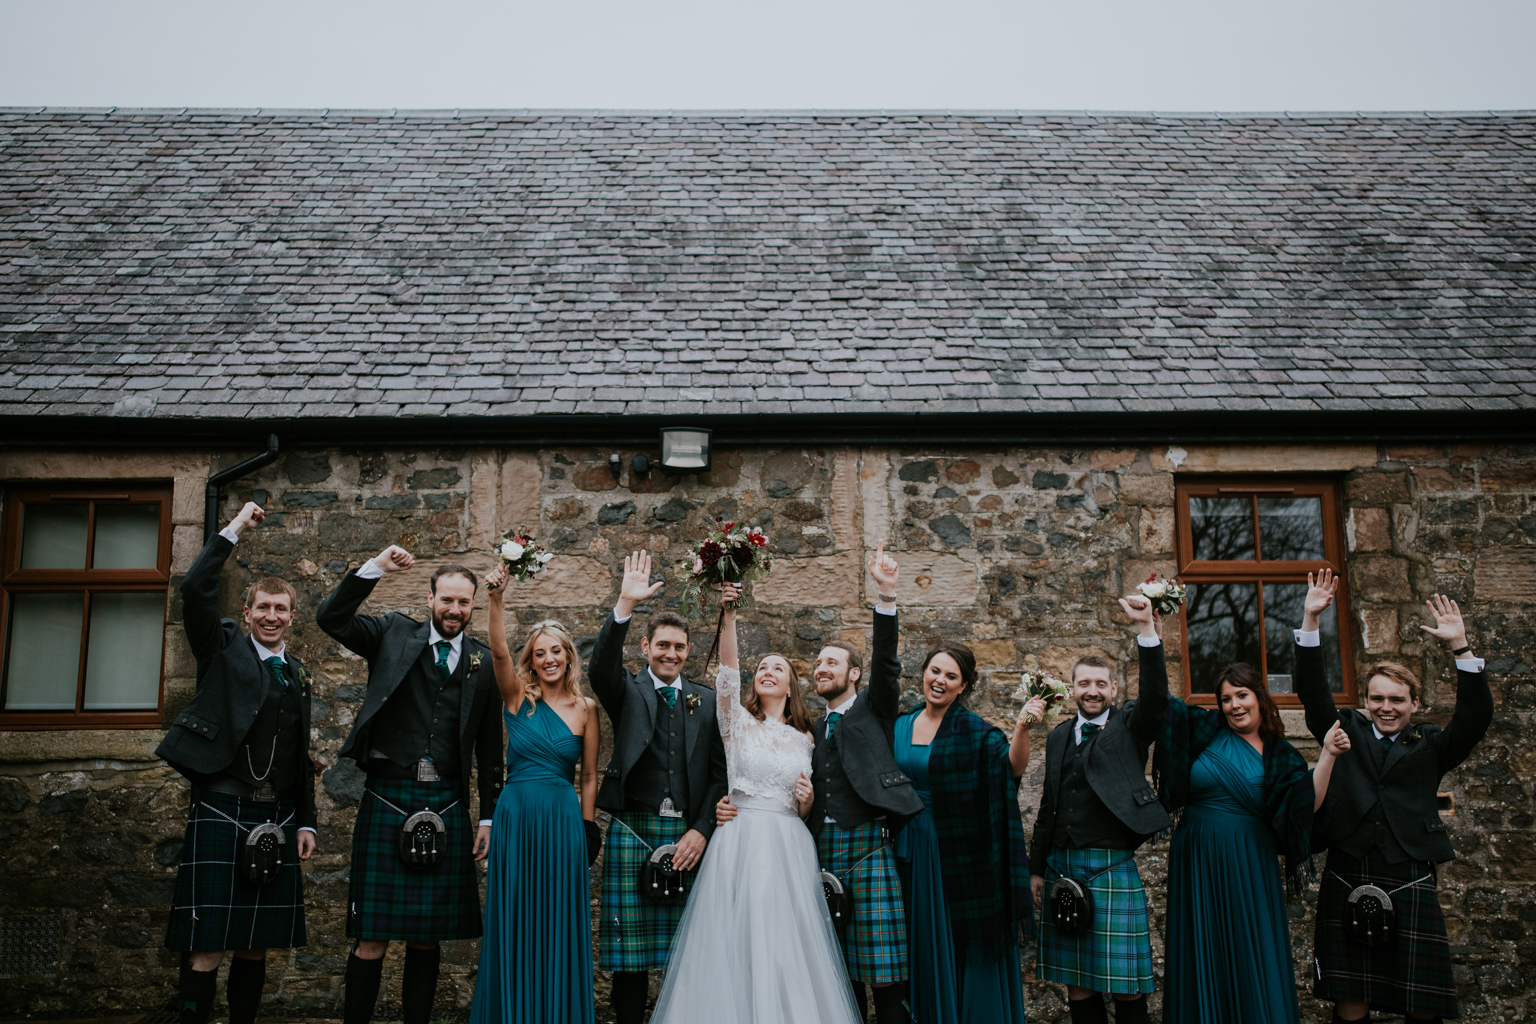 Bridal party formal shot at Harelaw farm.